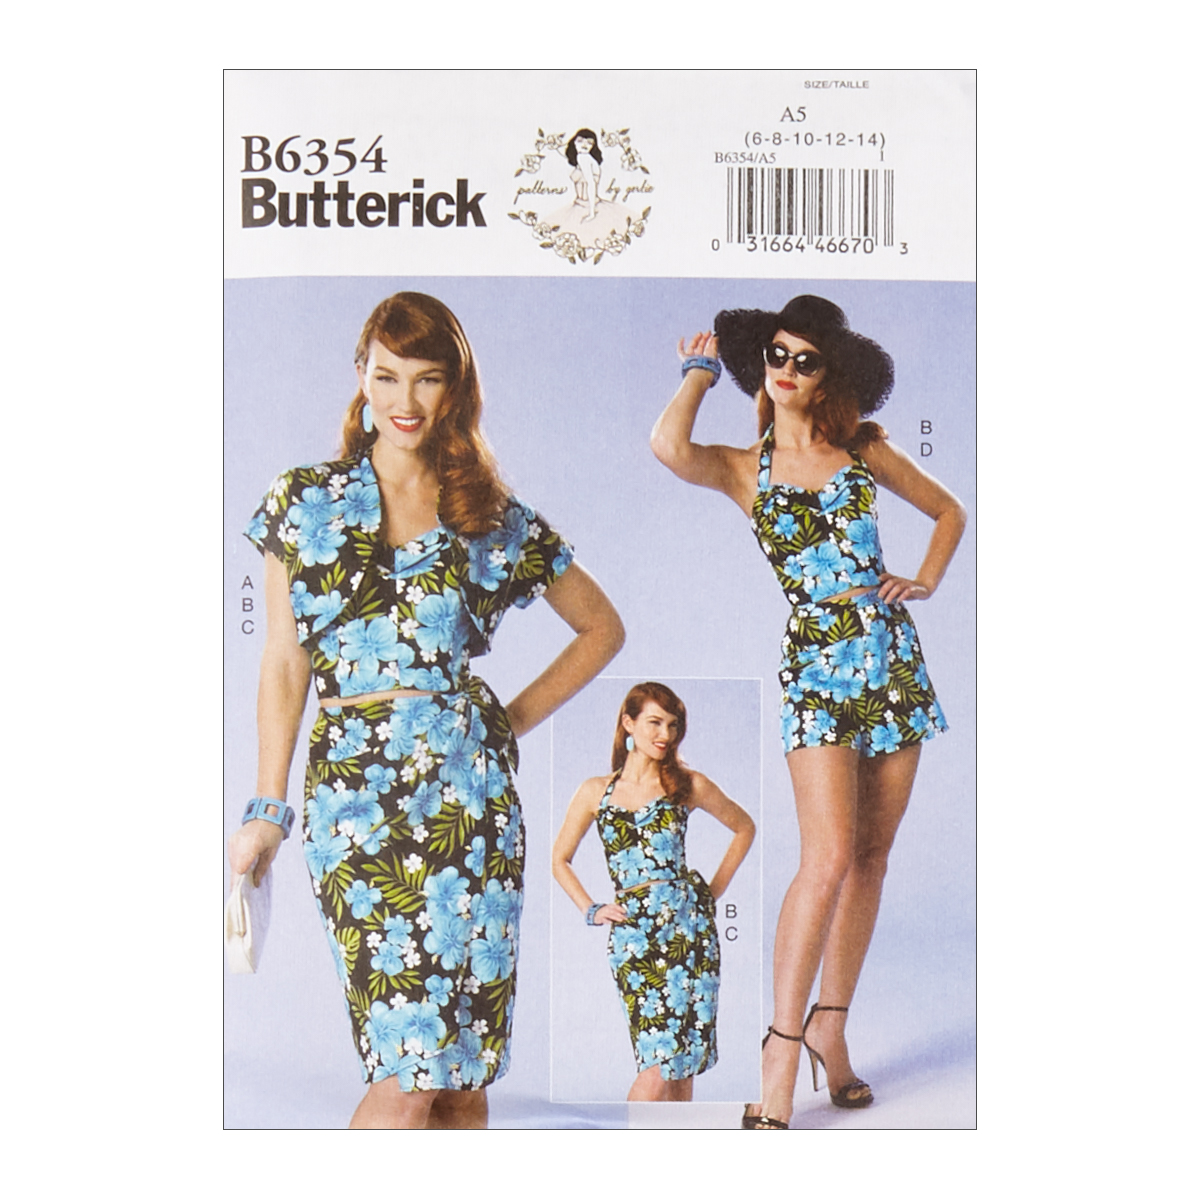 1950s Fabrics & Colors in Fashion Butterick B6354 Patterns by Gertie Petite Bolero Bustier Sarong  Shorts E5 SZ 14-22 $11.97 AT vintagedancer.com